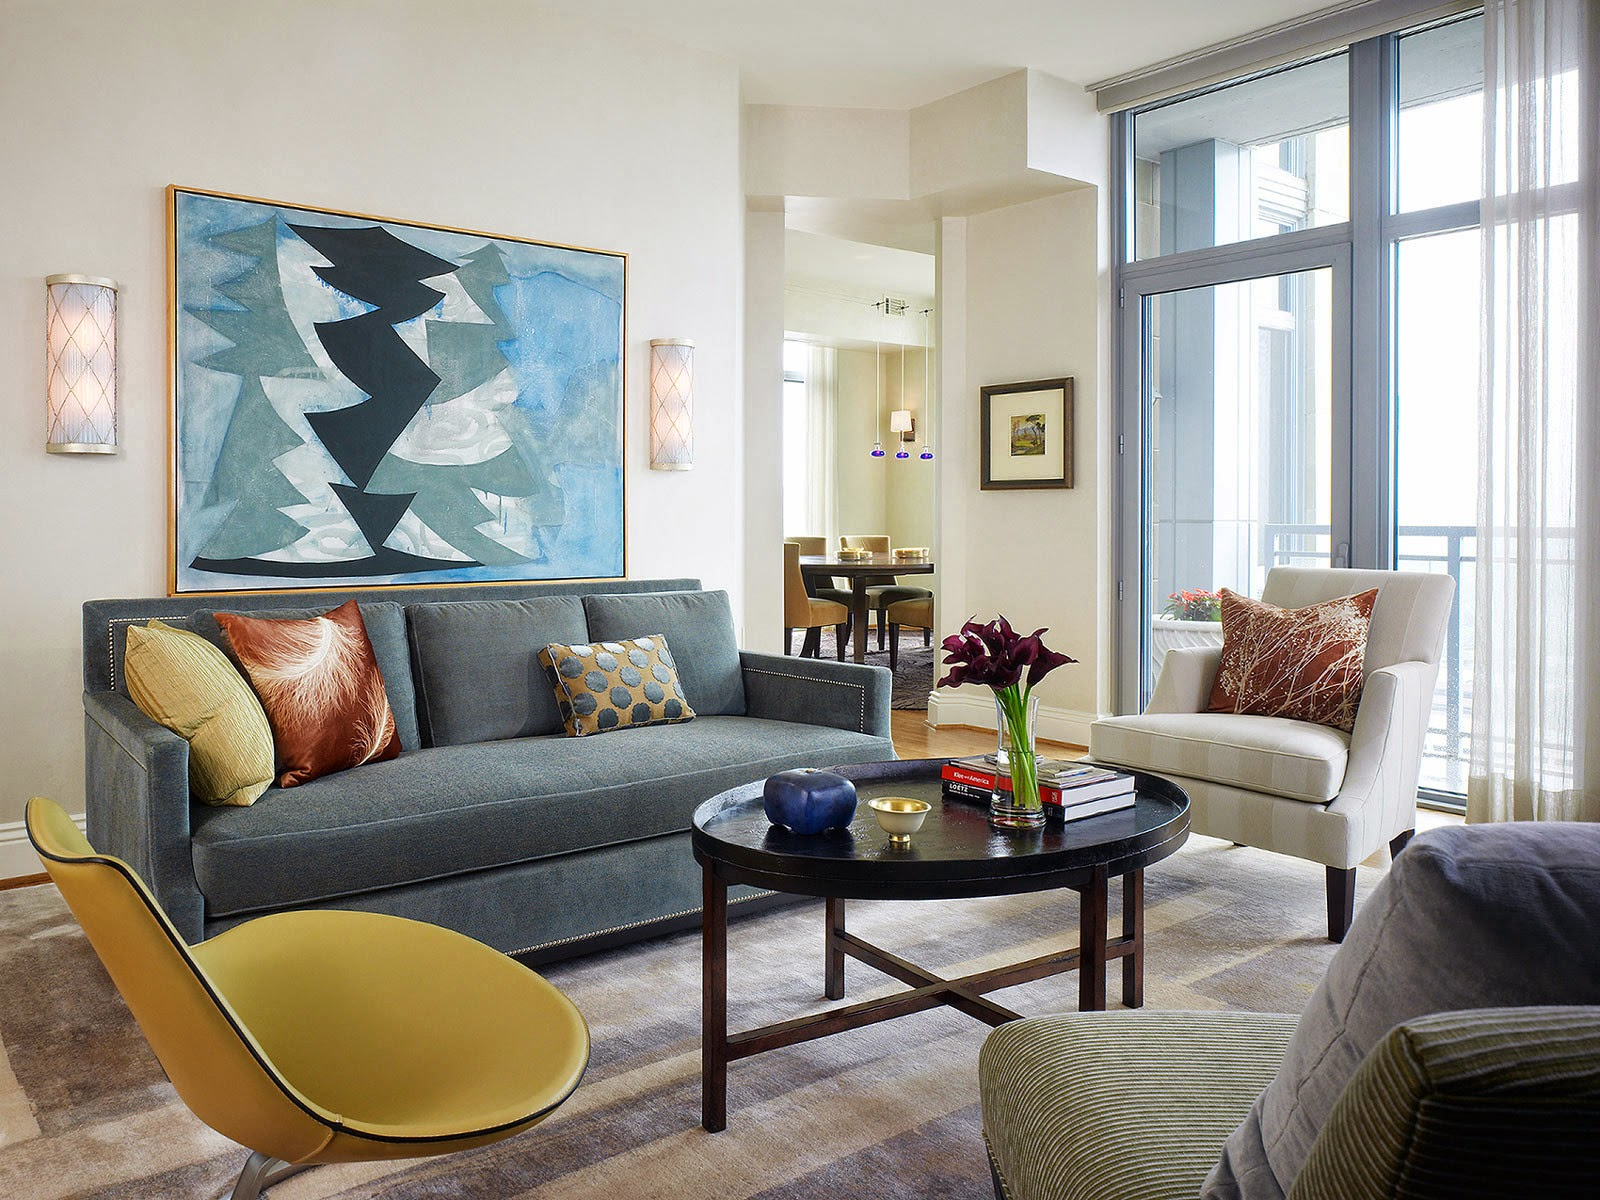 allied studio how to work like a professional residential interior